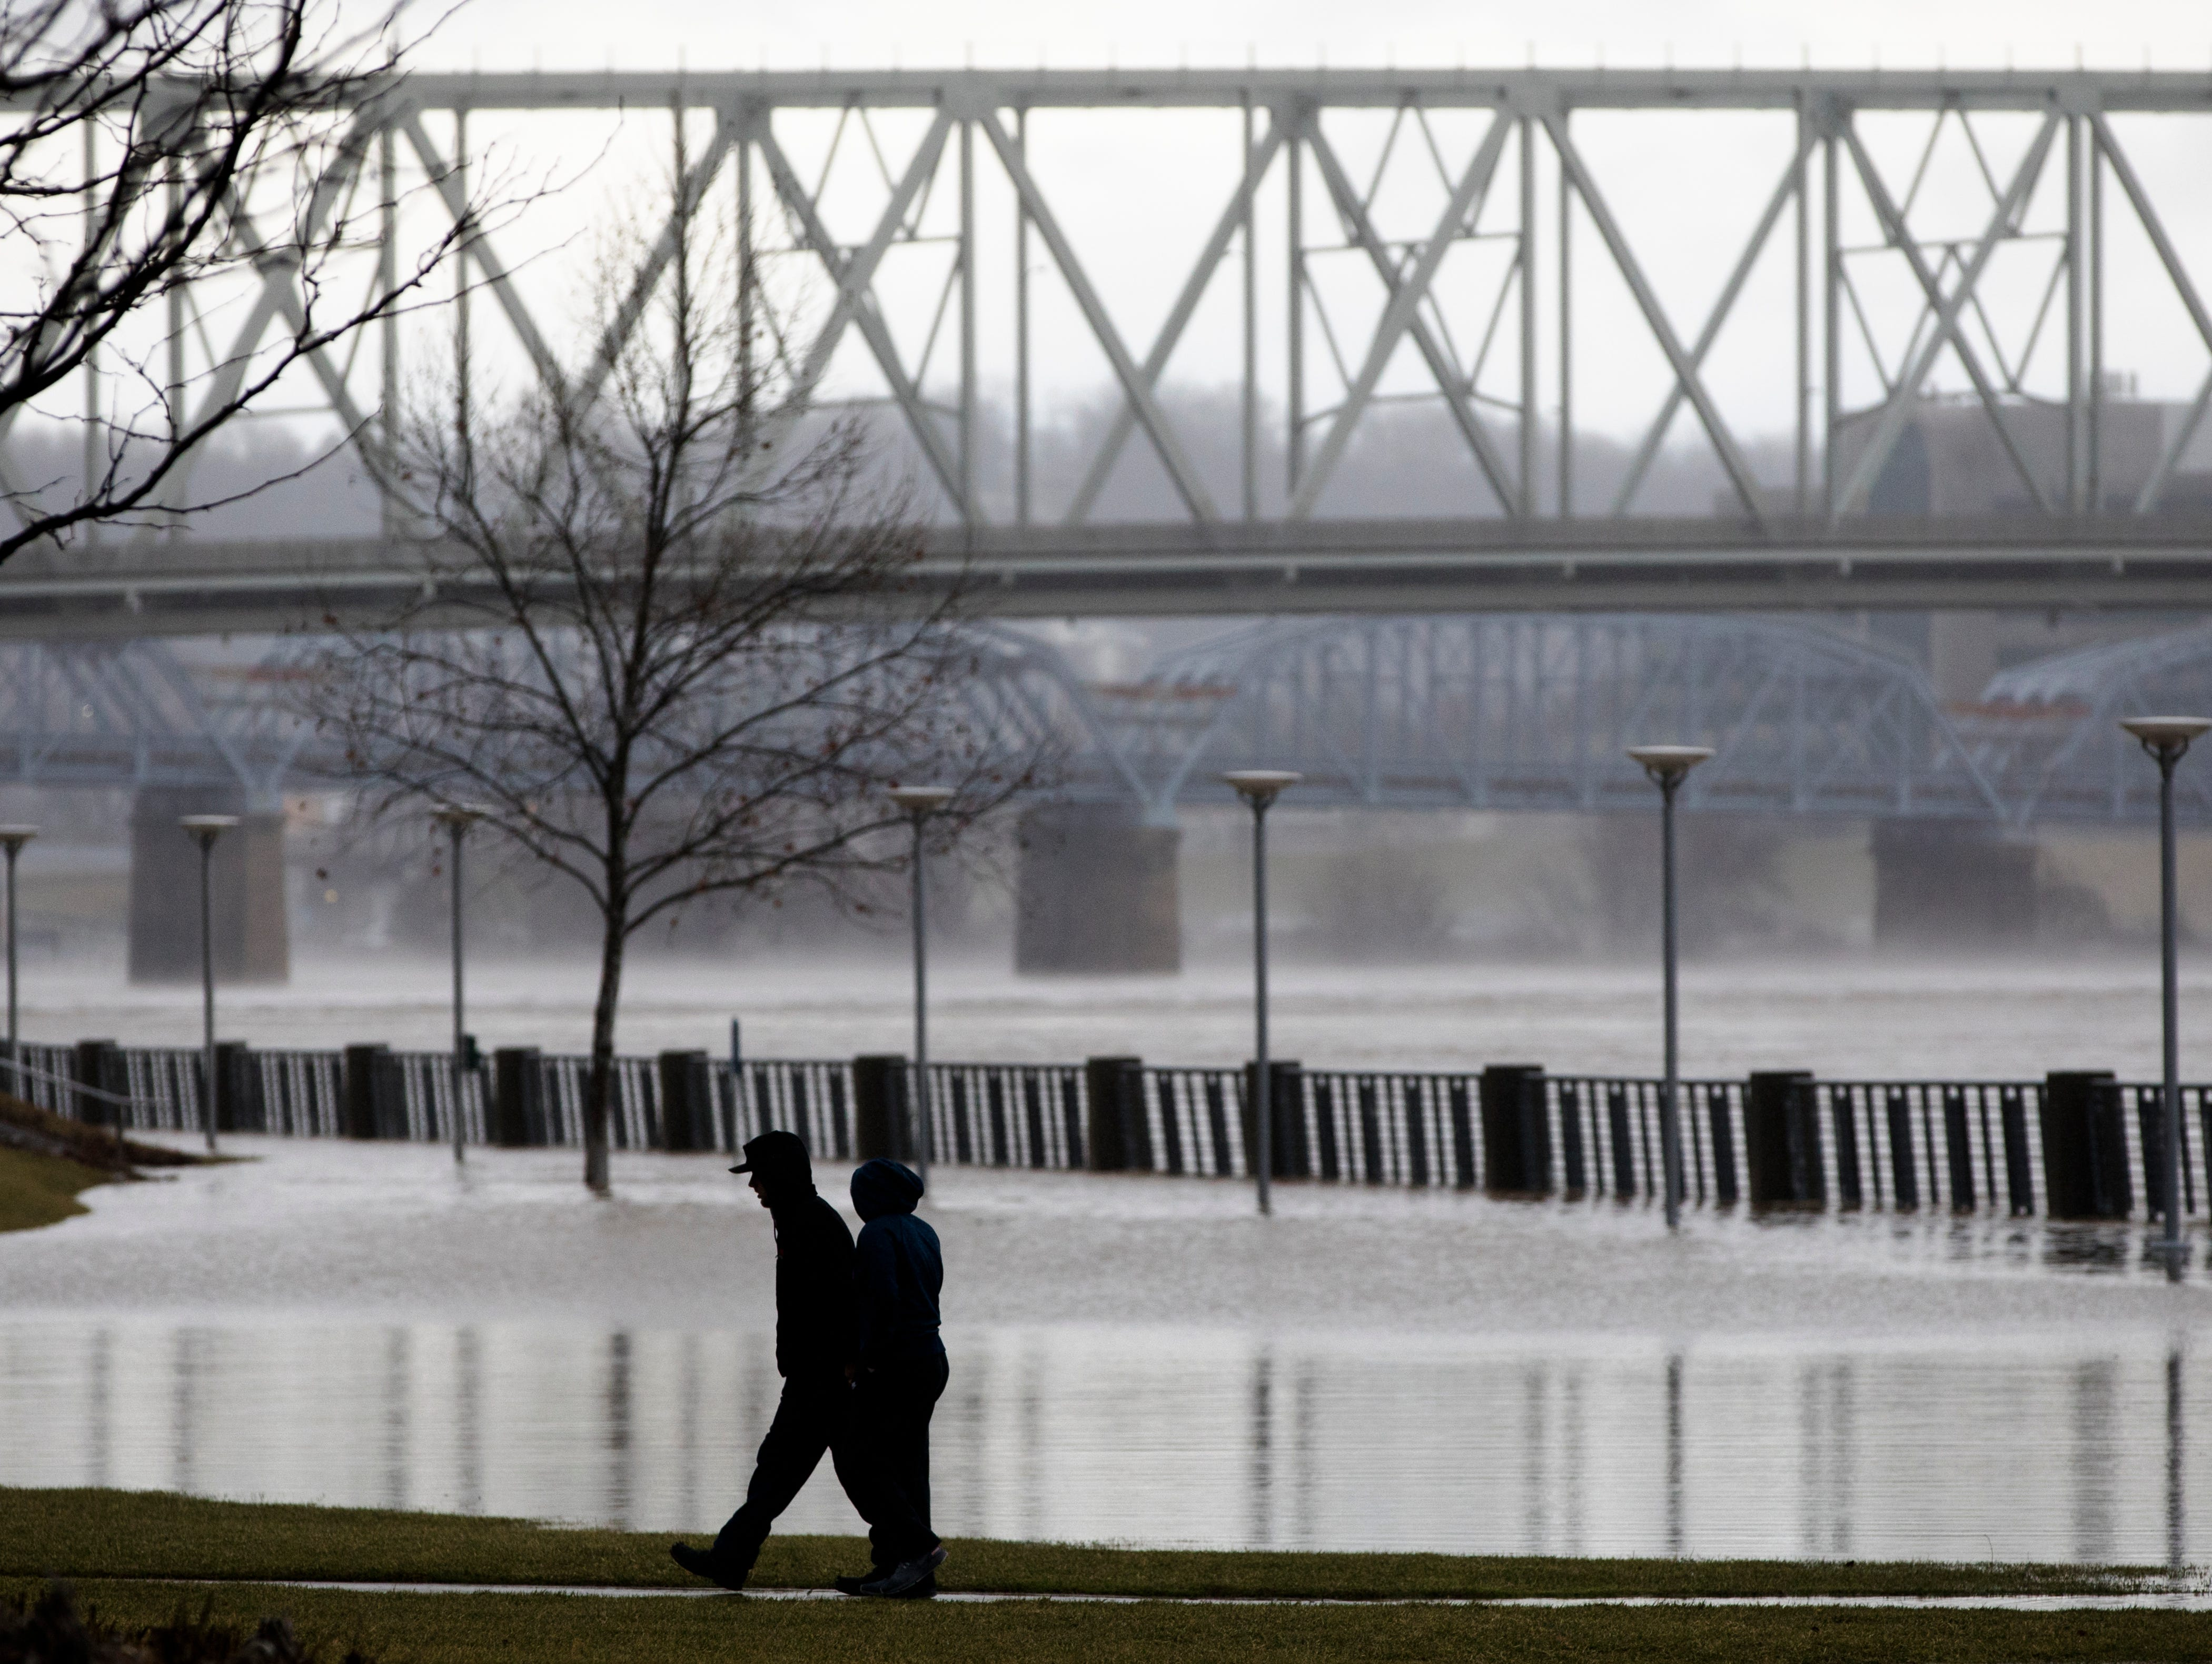 People walk Smale Riverfront Park in Cincinnati on Tuesday, Feb. 12, 2019. The Ohio River is expected to crest at 56.3 feet at 1 a.m. Wednesday, Feb. 13.